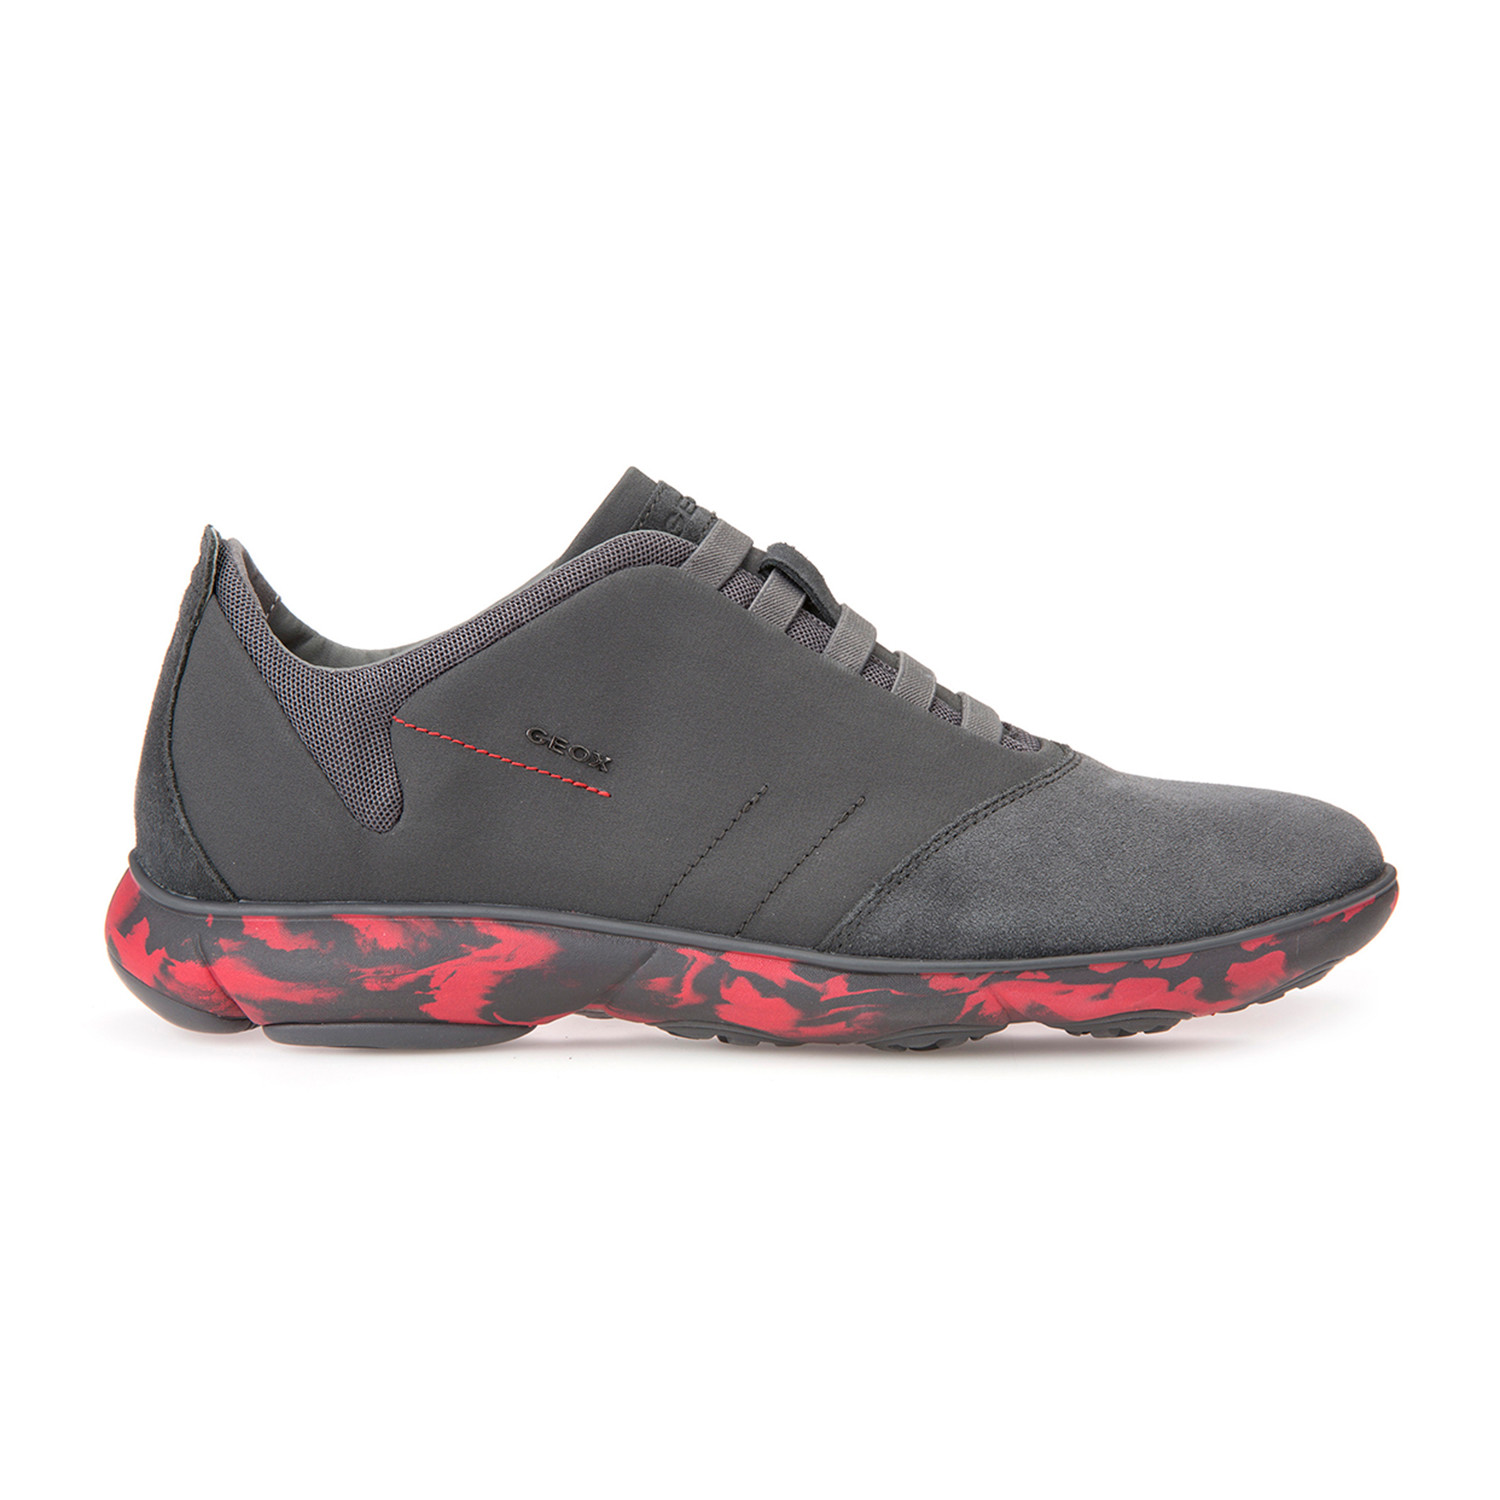 5bcc1009c2c Nebula Sneakers // Dark Grey + Red (Euro: 45) - Geox - Touch of Modern